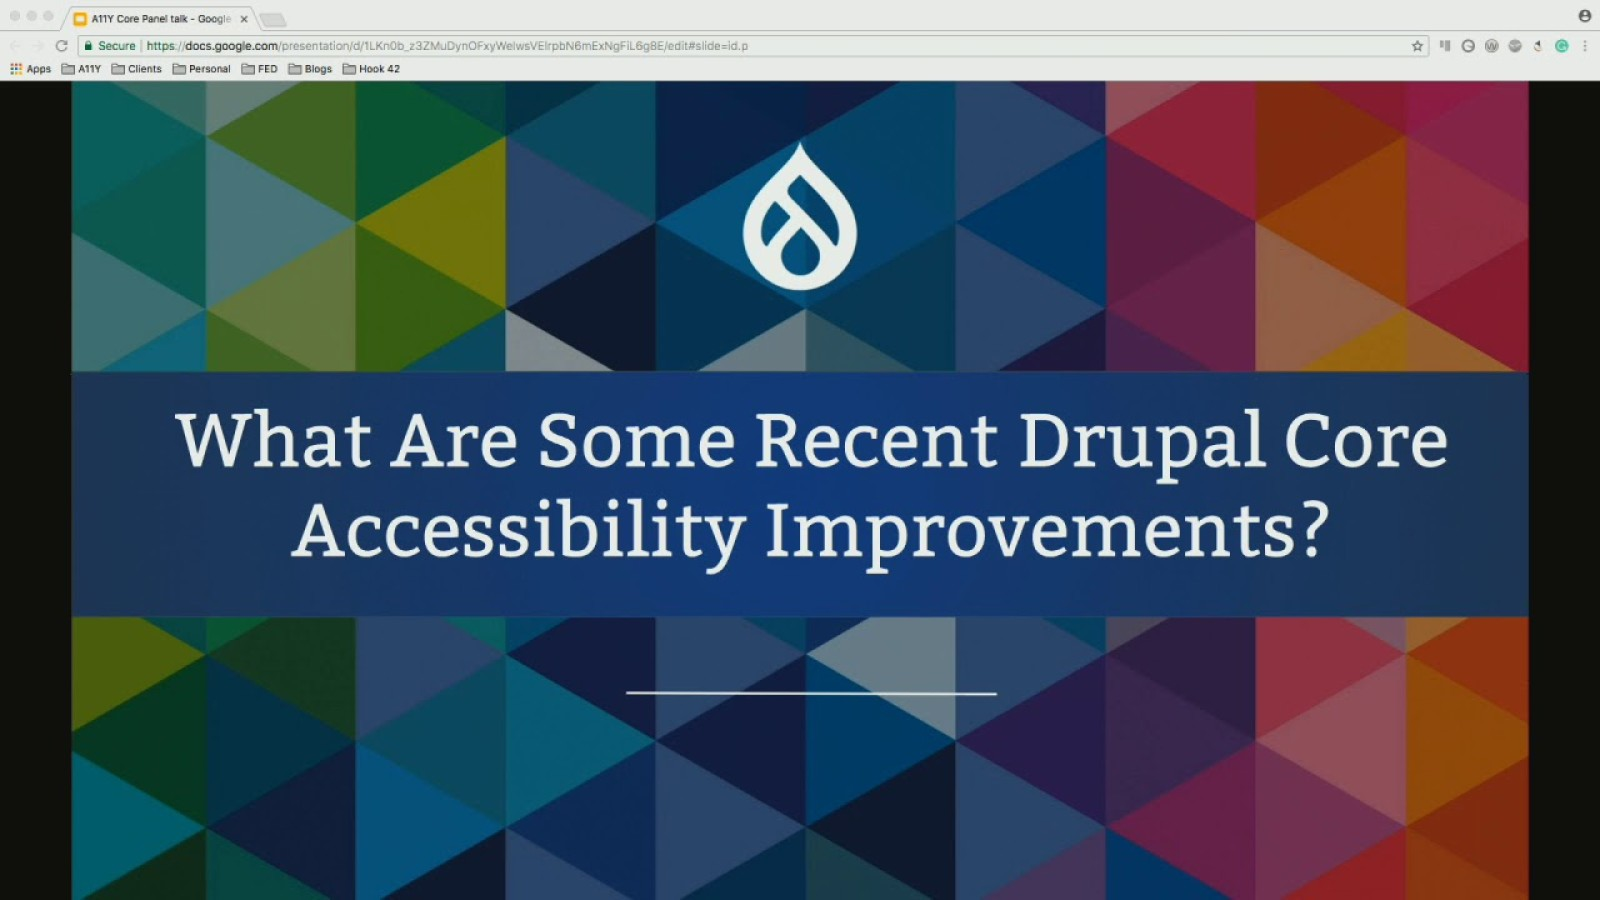 Core Accessibility: Building Inclusivity into the Drupal Project